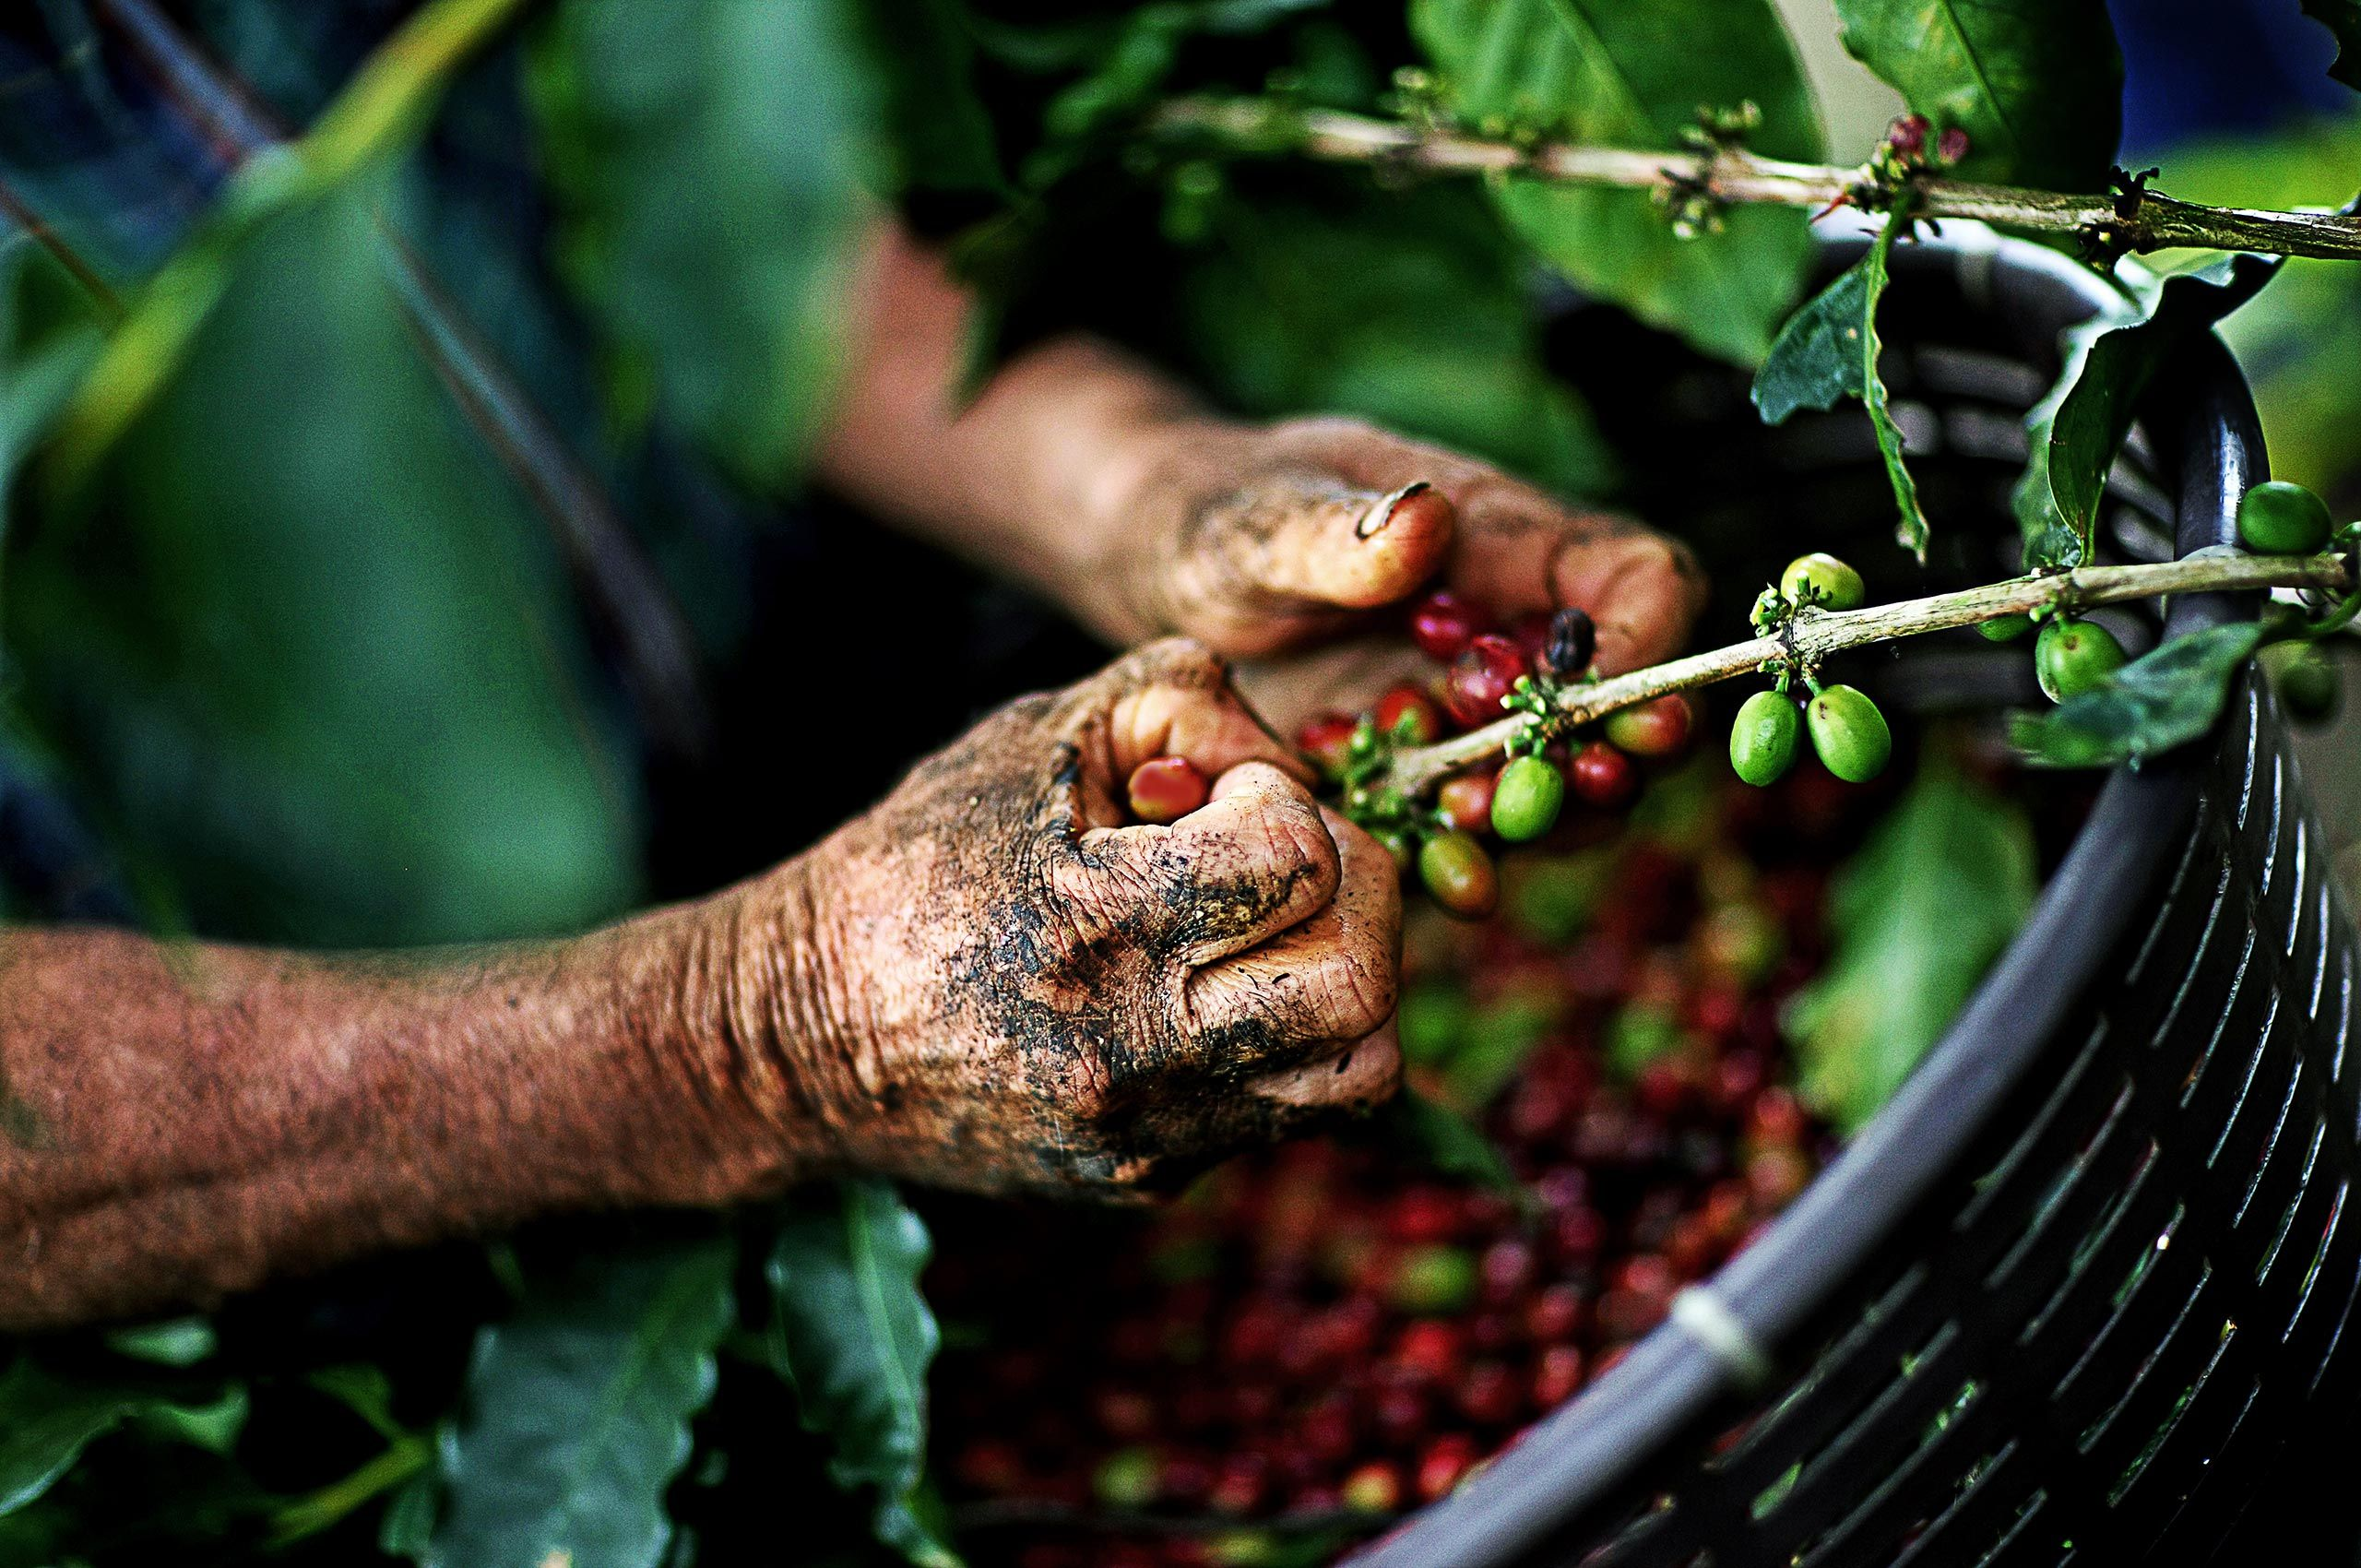 Costa_Rica_Coffee_Picker.jpg